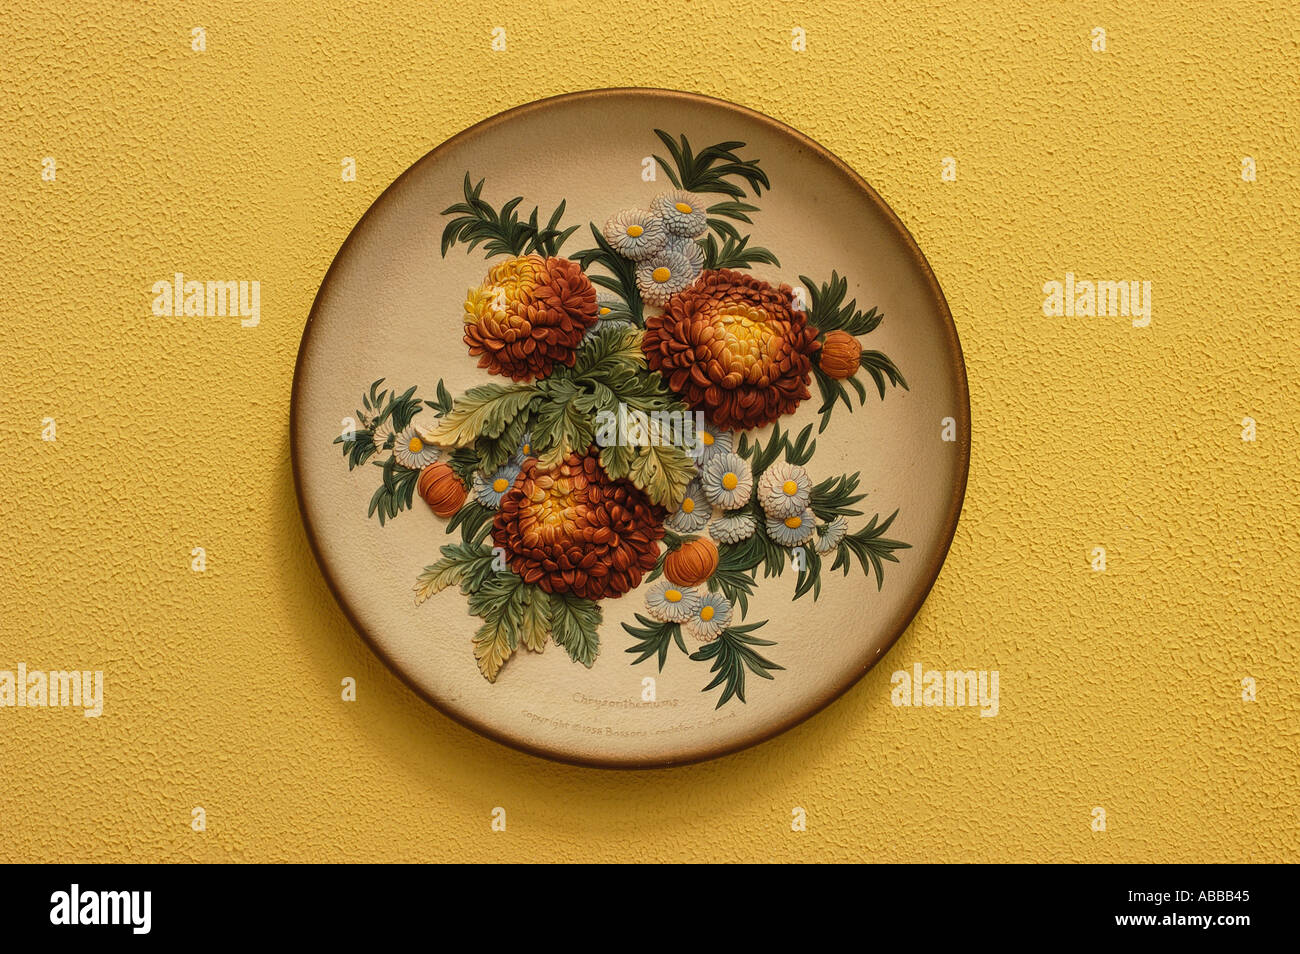 Decorative Plate Hanging On Wall Stock Photos & Decorative Plate ...